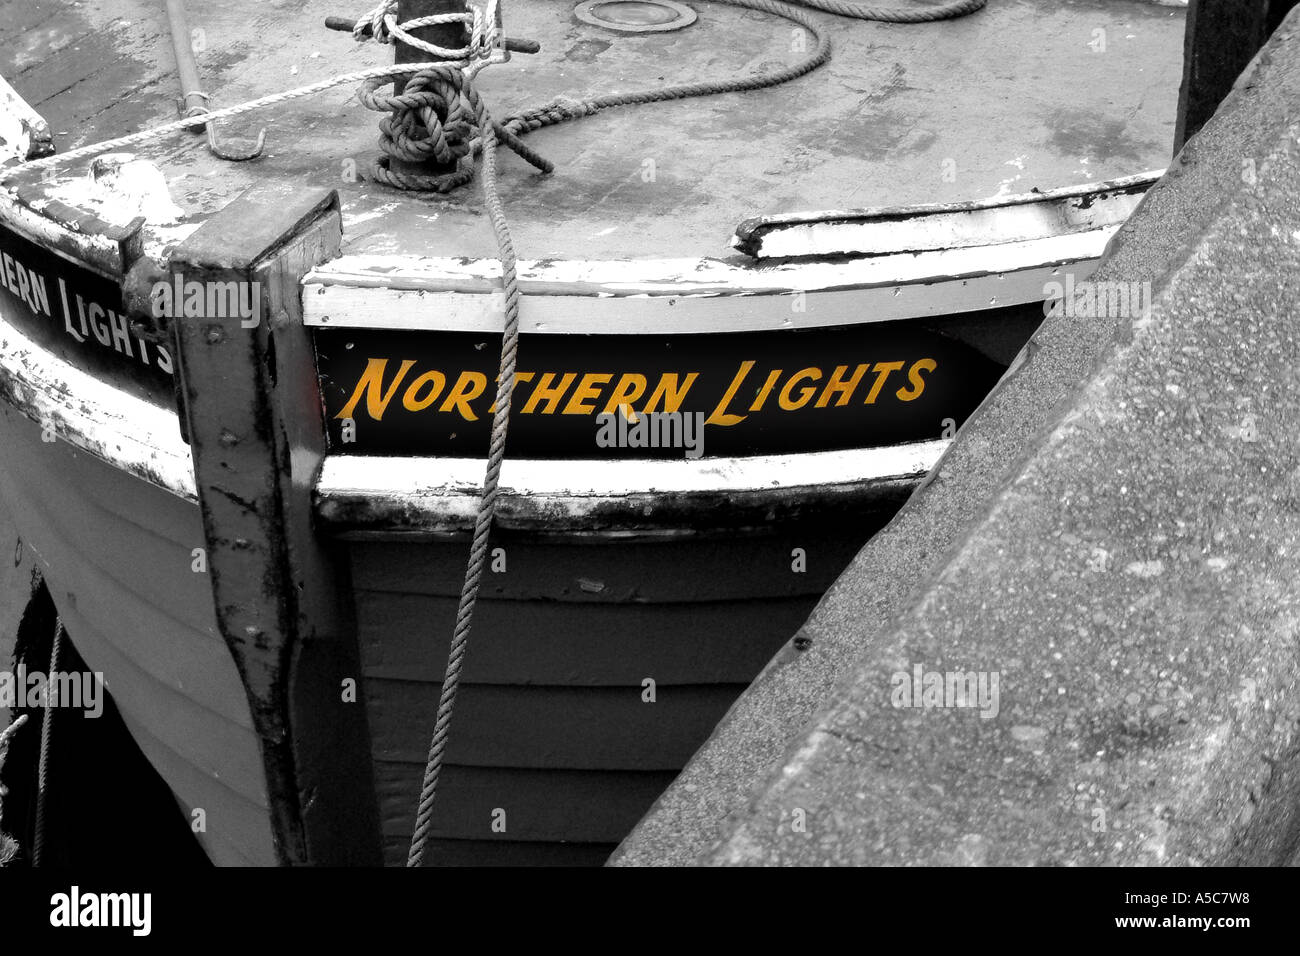 Stylised black and white image of fishing boat with Northern Lights name in original yellow colour - Stock Image